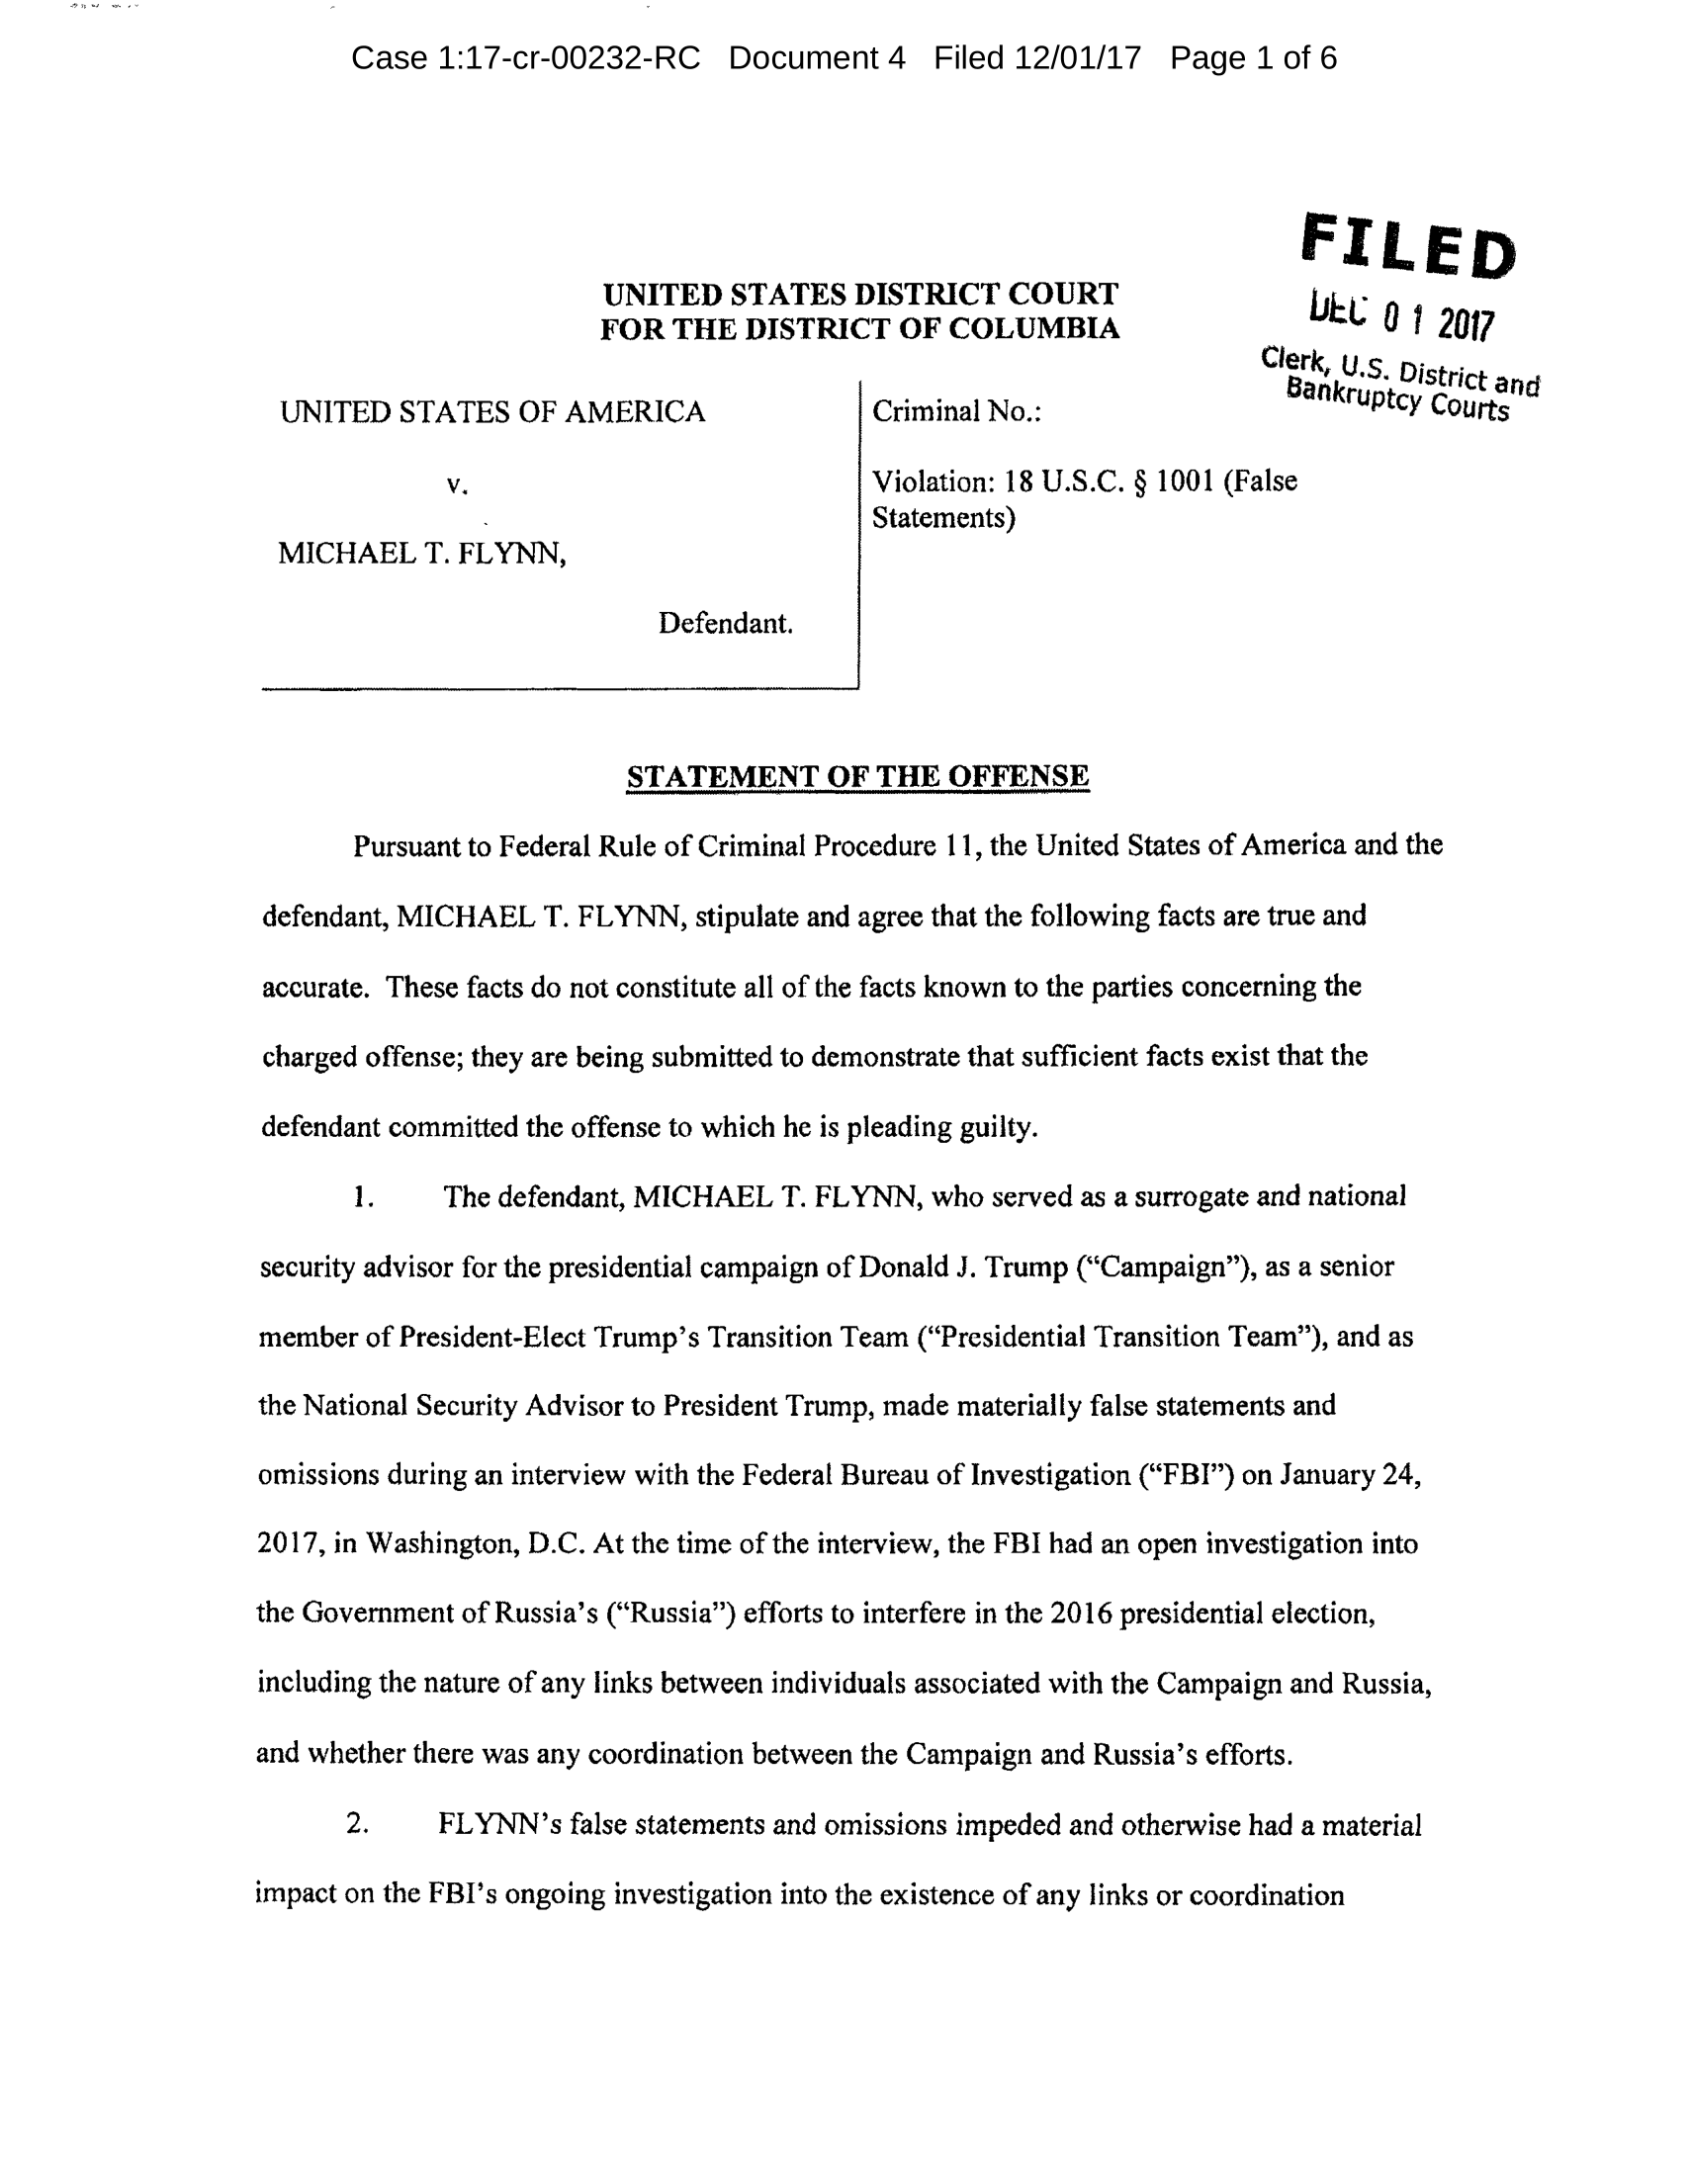 Michael Flynn Statement of the Offense